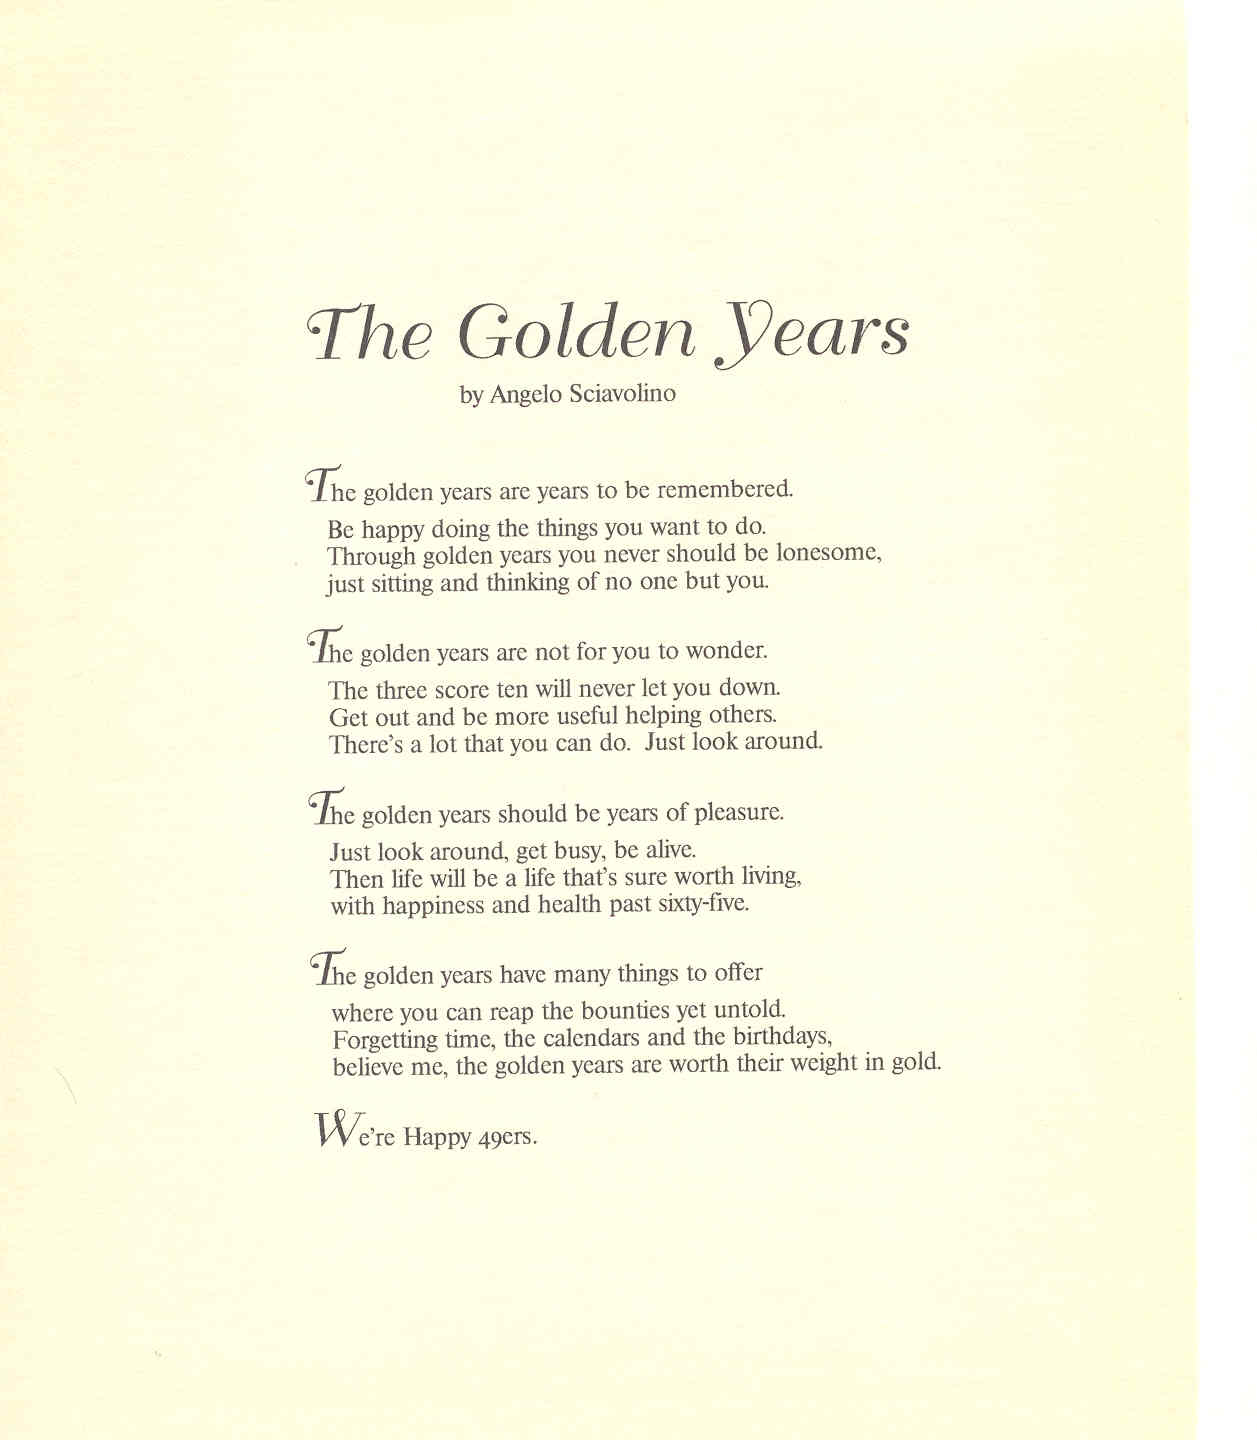 the golden years poem analysis essay